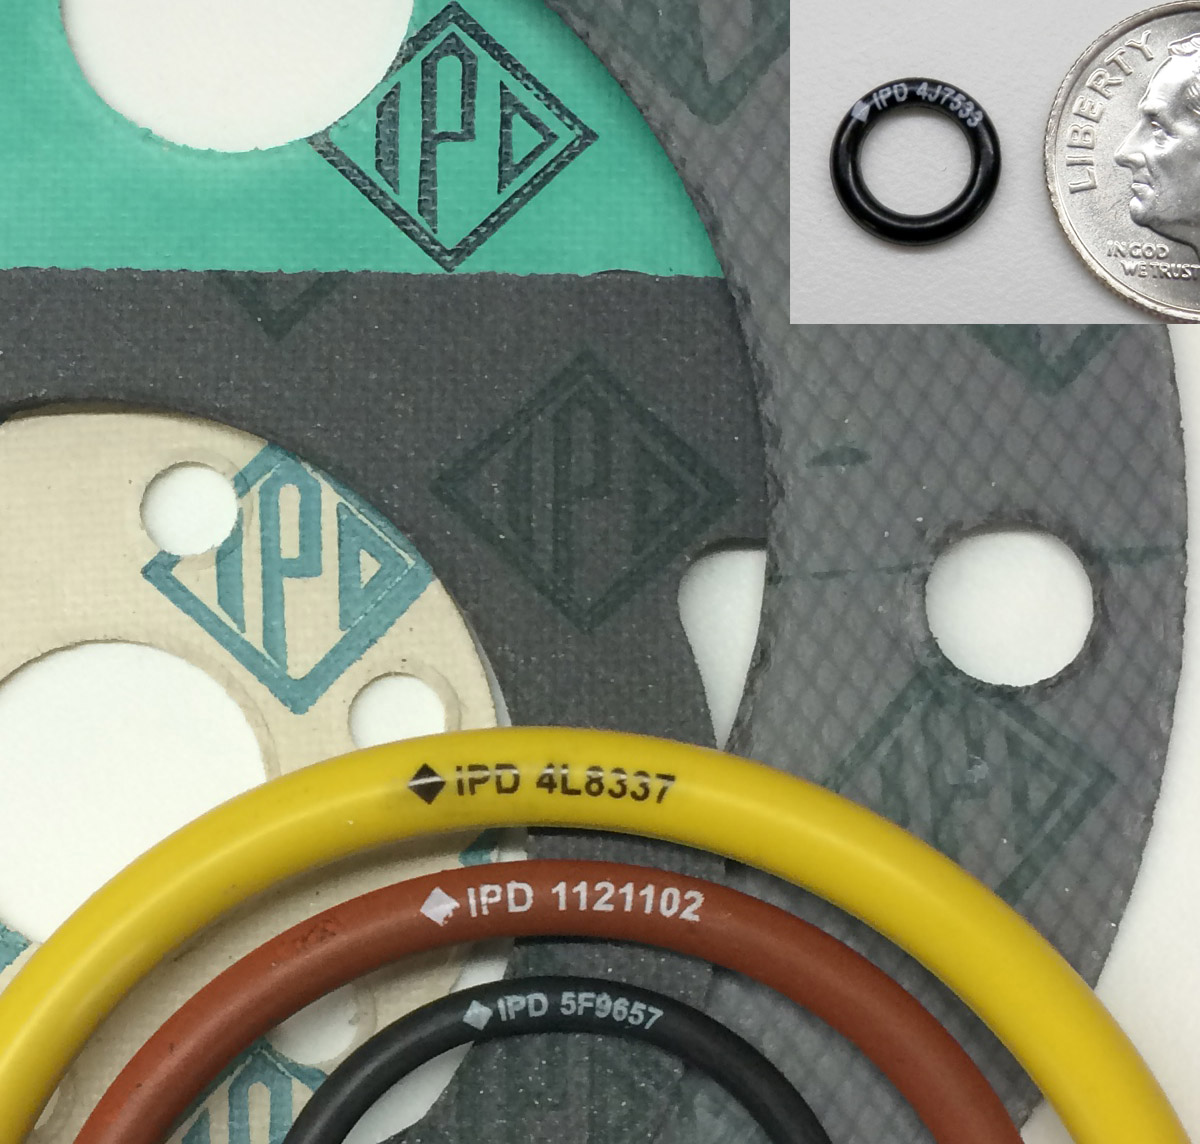 IPD branded gaskets